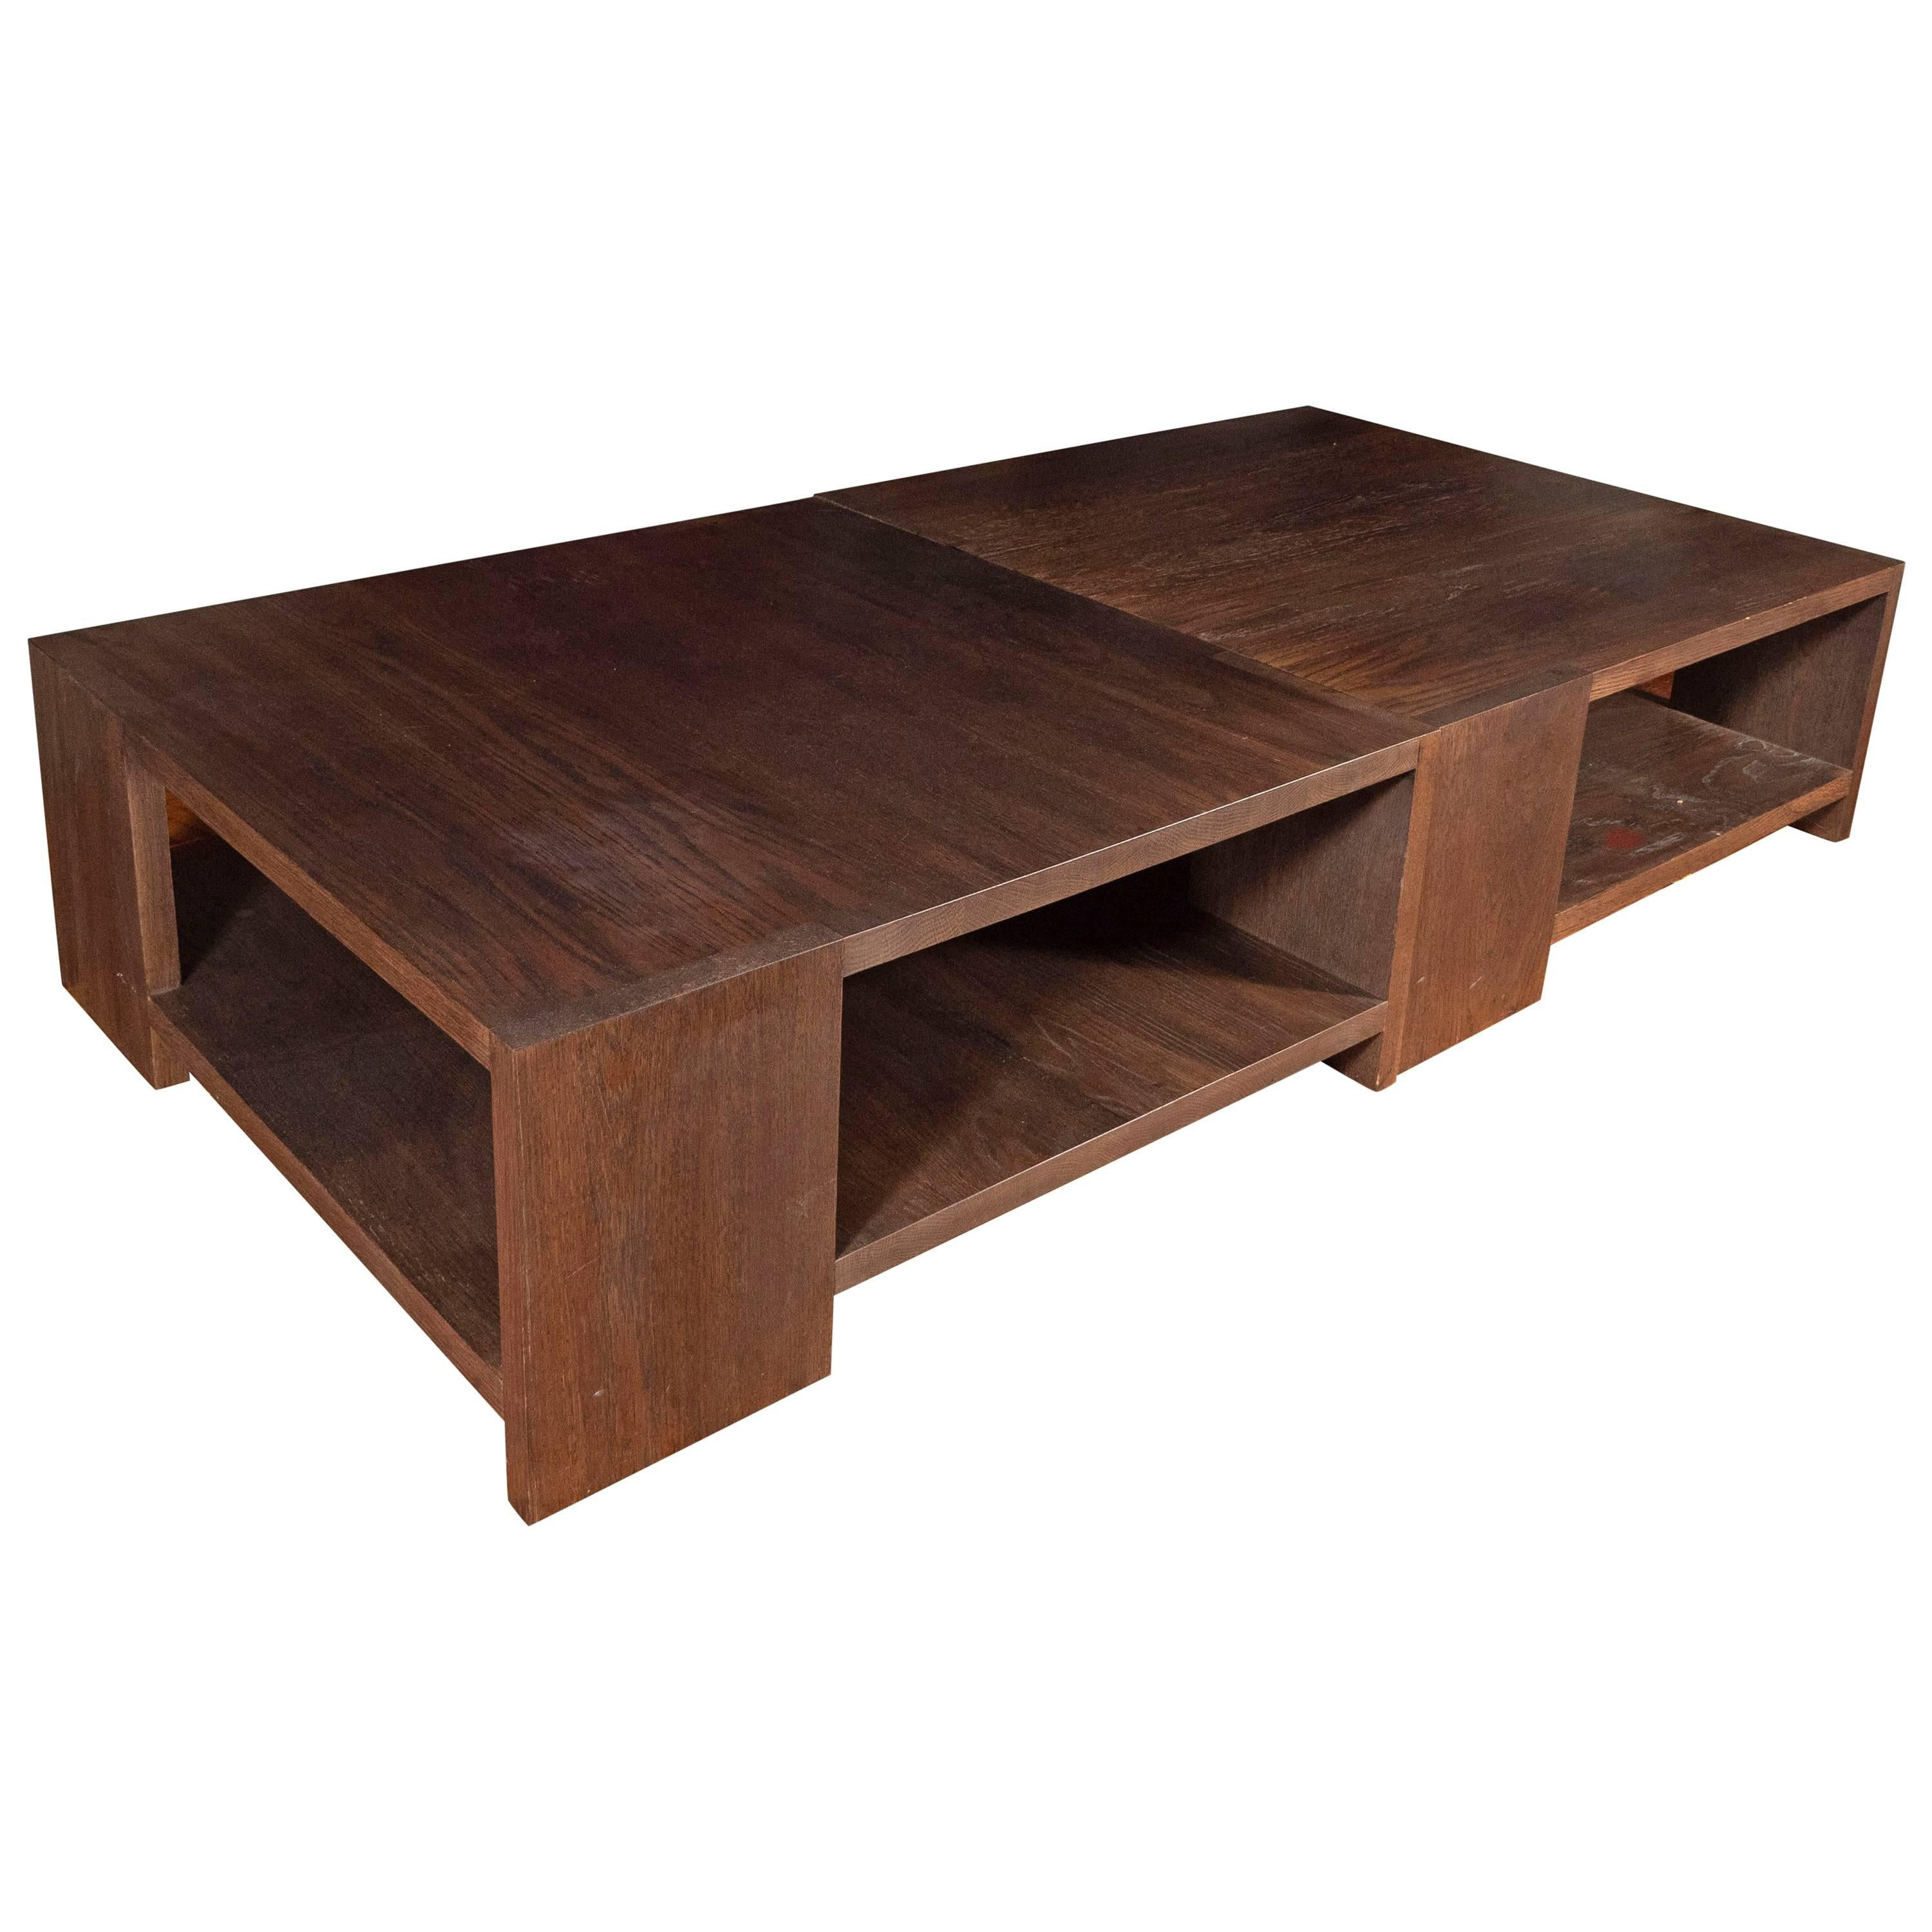 Pair Of Custom Designed Oak Coffee Tables By Richard Ostell Design